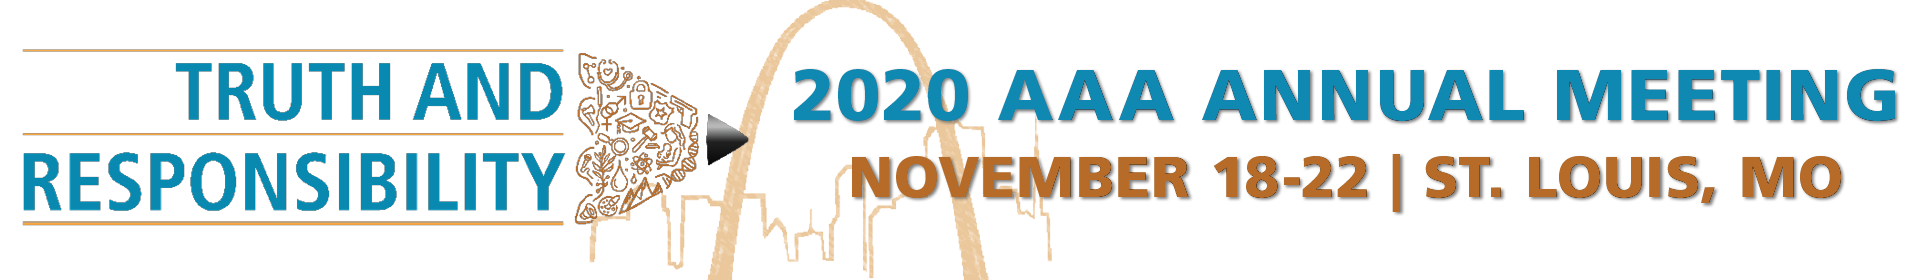 "2020 AAA Annual Meeting Logo. Reads ""Truth and Responsibility"" on top of a pencil outline with various images in the pencil head. November 18-22 